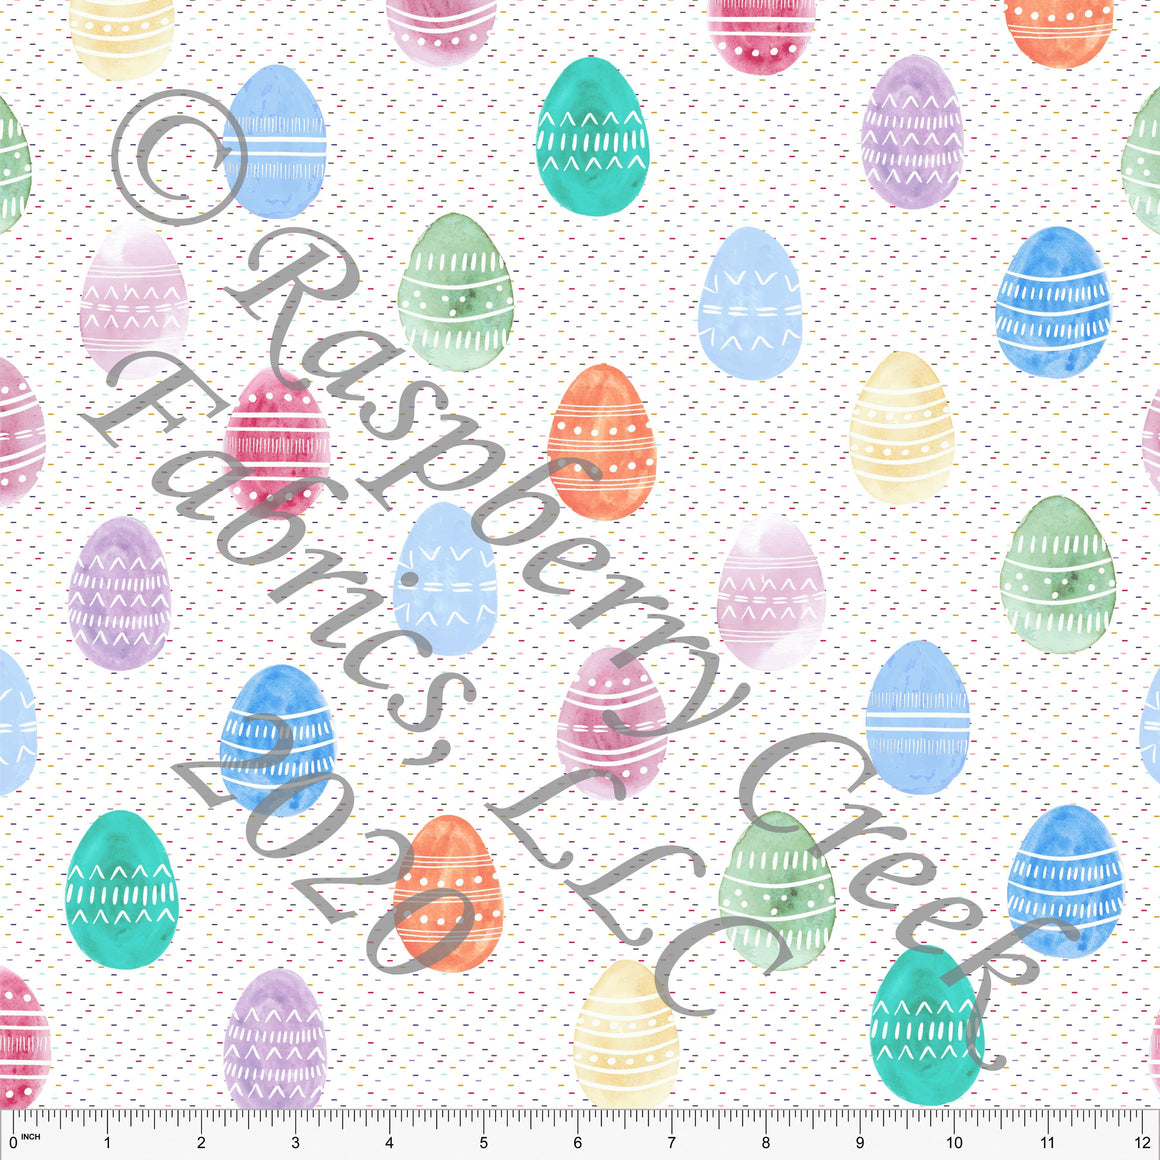 Seafoam Sage Orange Pink and Blue Watercolor Patterned Easter Eggs By Kelsey Shaw for Club Fabrics - Raspberry Creek Fabrics